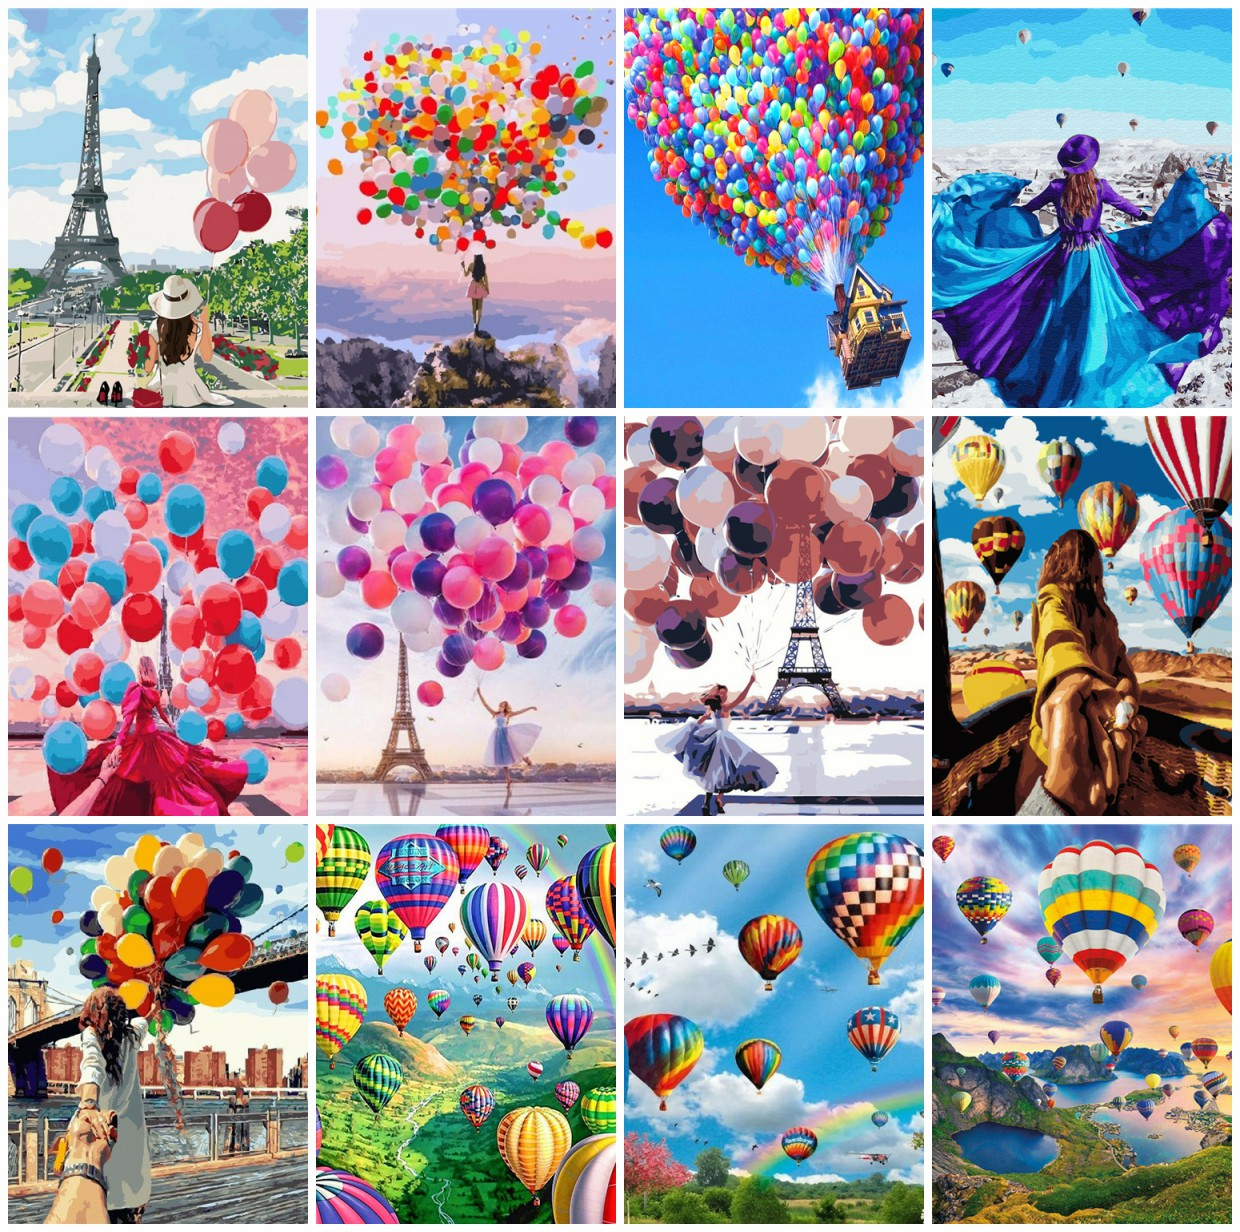 AZQSD Painting By Number Balloon Coloring By Numbers Landscape Arcylic Oil Painting HandPainted Kit Canvas Home Wall Decor